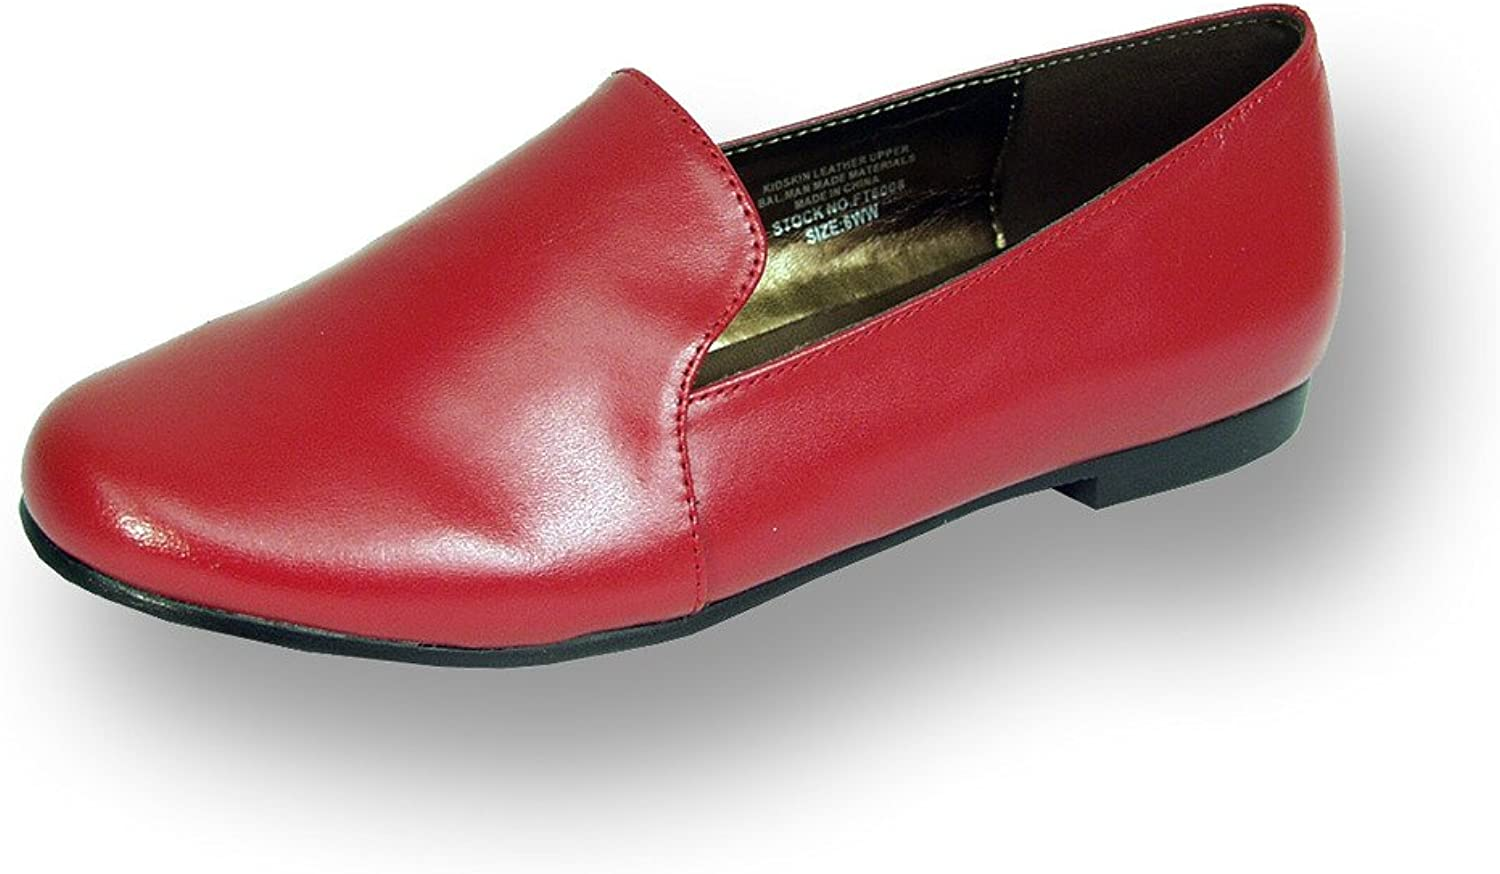 Peerage FIC Charlie Women Wide Width Leather Flat for Everyday Life (Size & Measurement Guides Available)